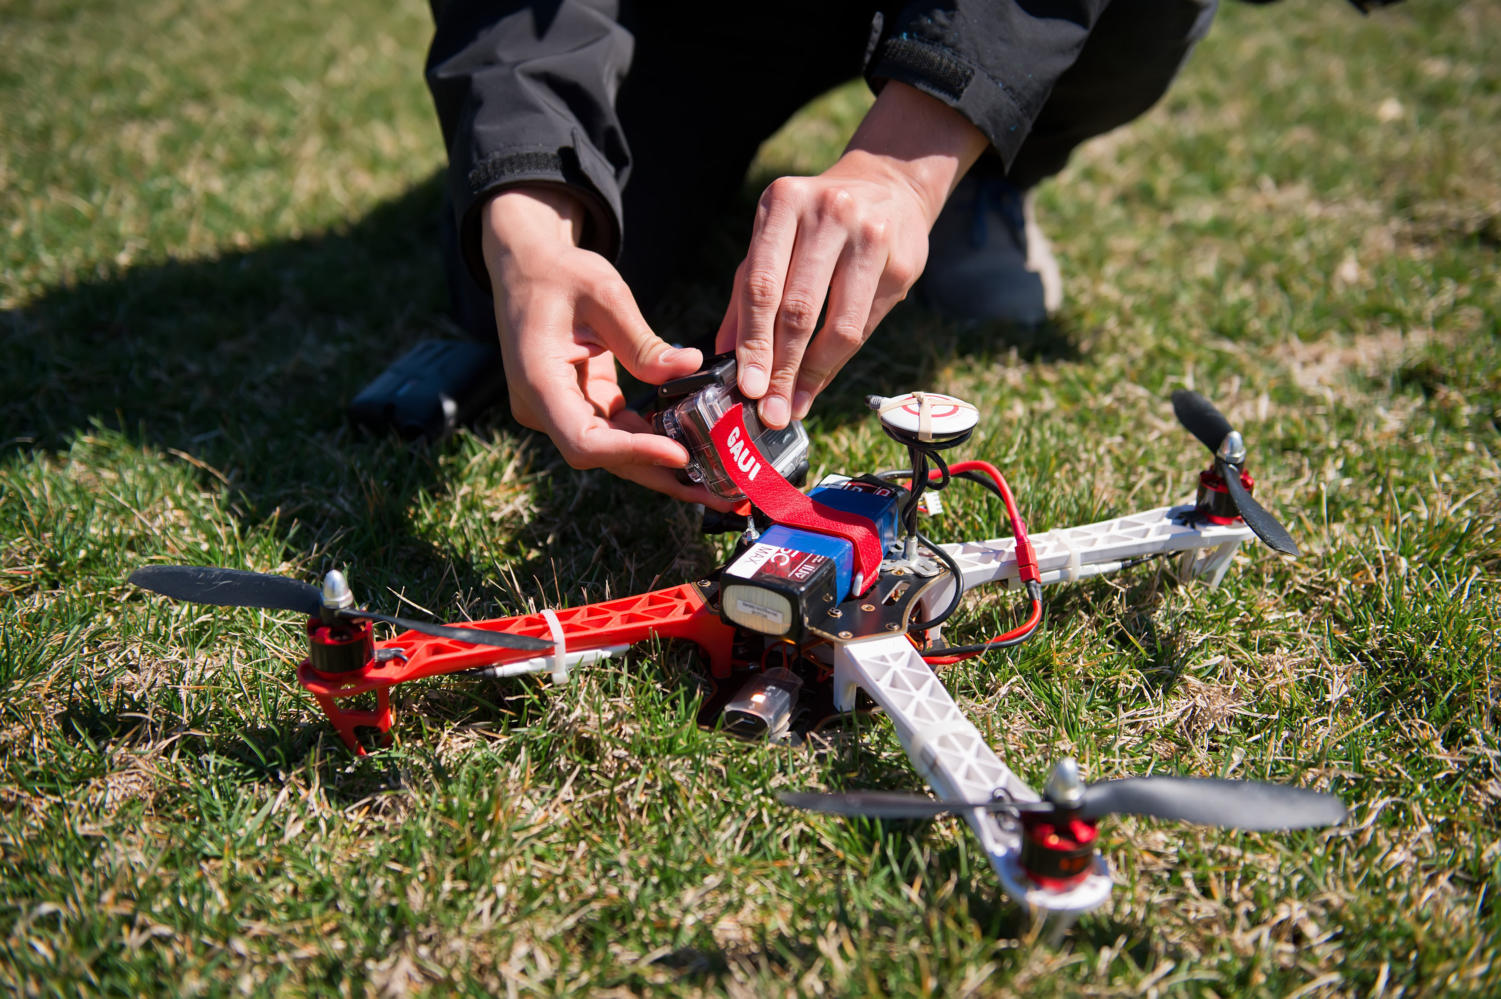 Students will train to use drones such as this, which they will be able to use to find a job (David Eulitt/Tribune News Service).